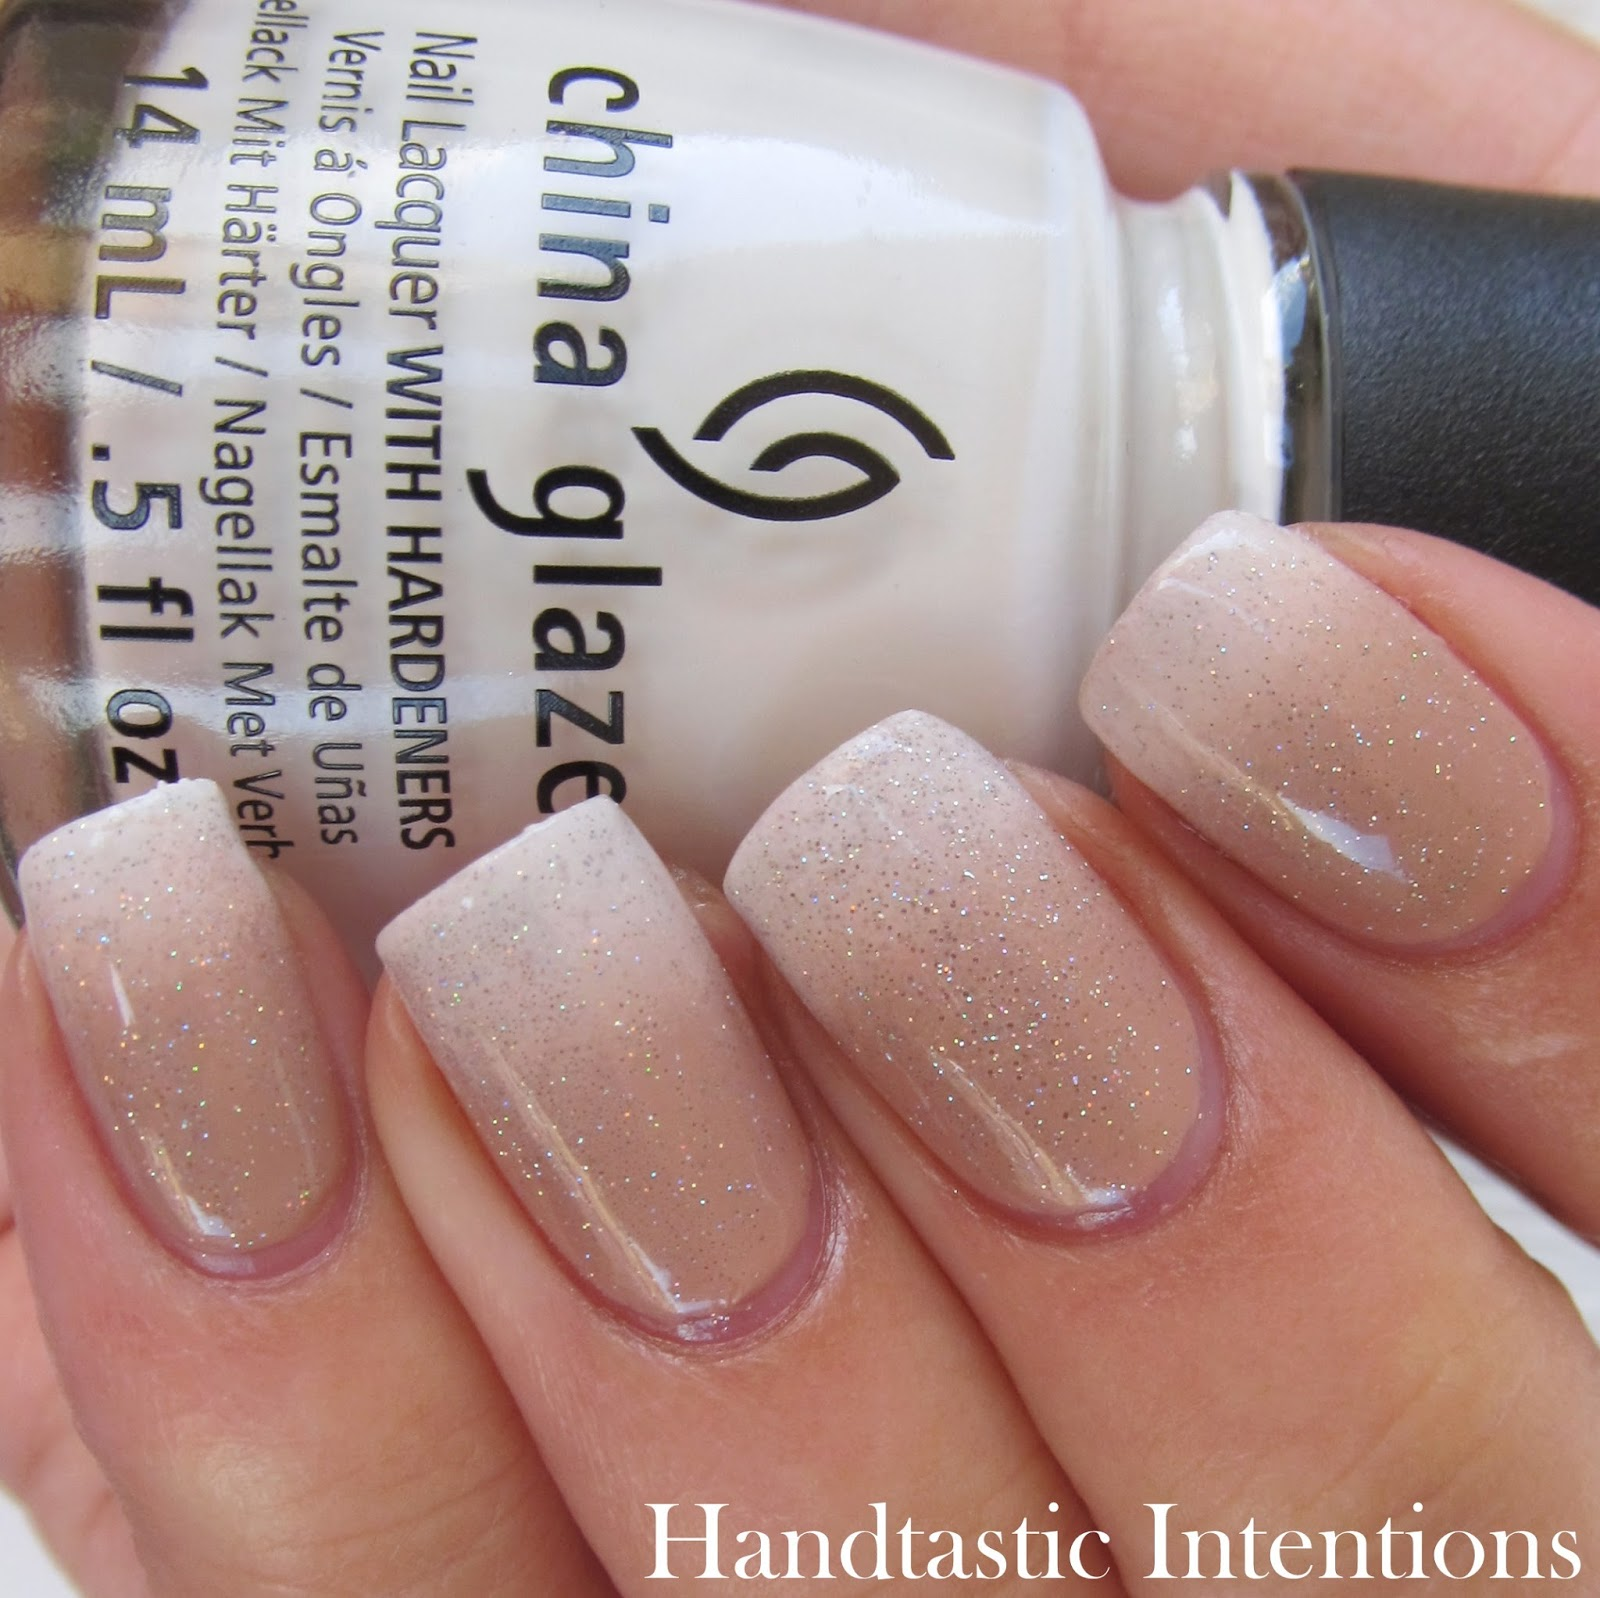 Handtastic Intentions Introduction To Work Wear Wednesdays And Tutorial